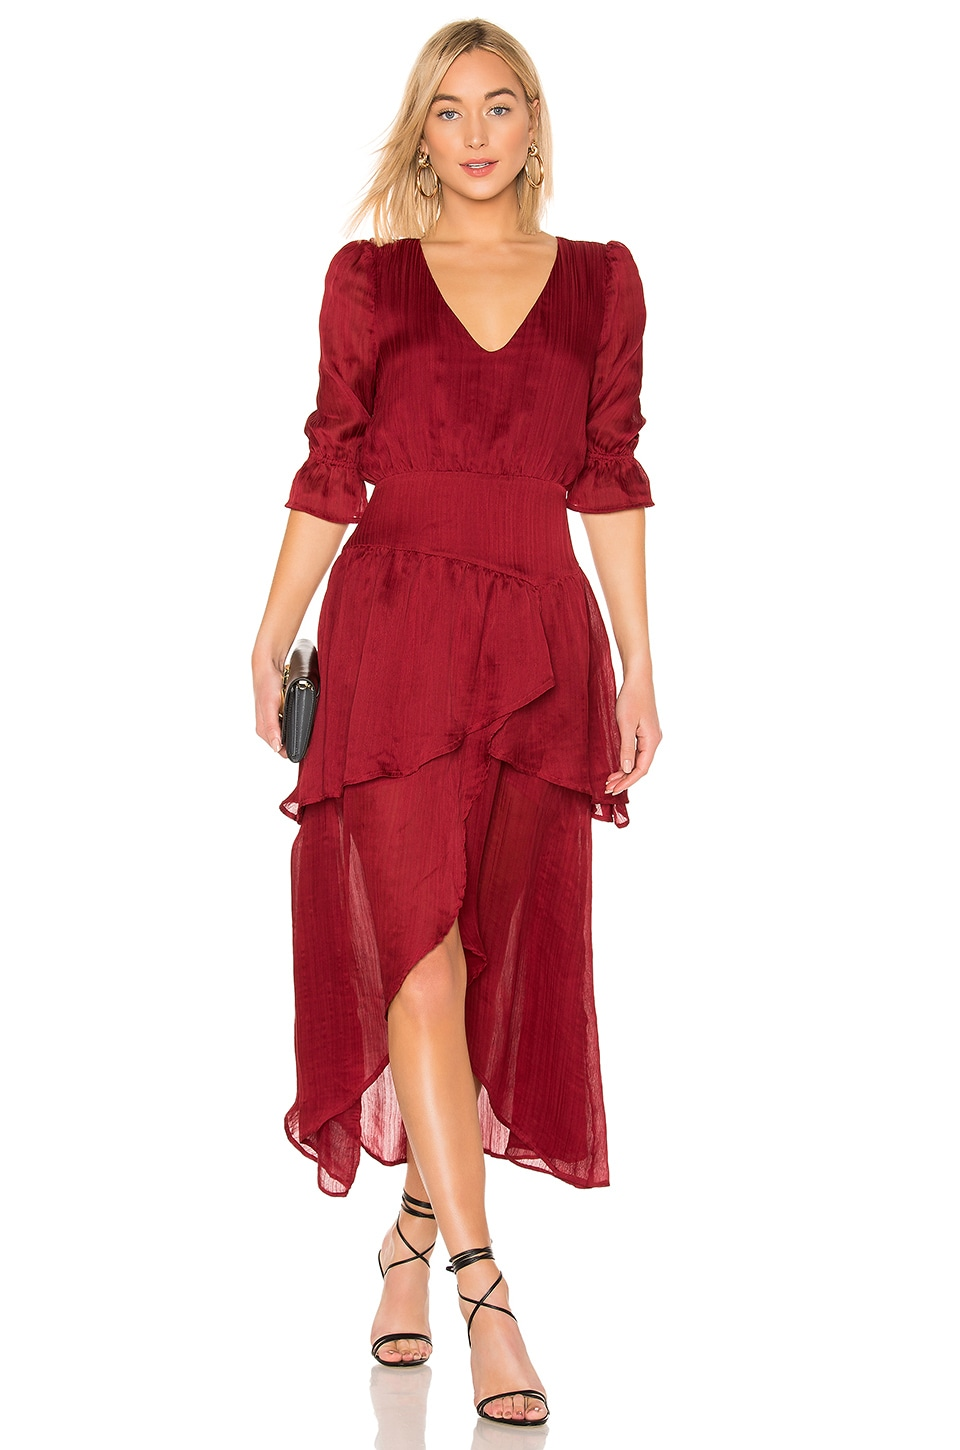 House of Harlow 1960 X REVOLVE Onel Dress in Crimson Red